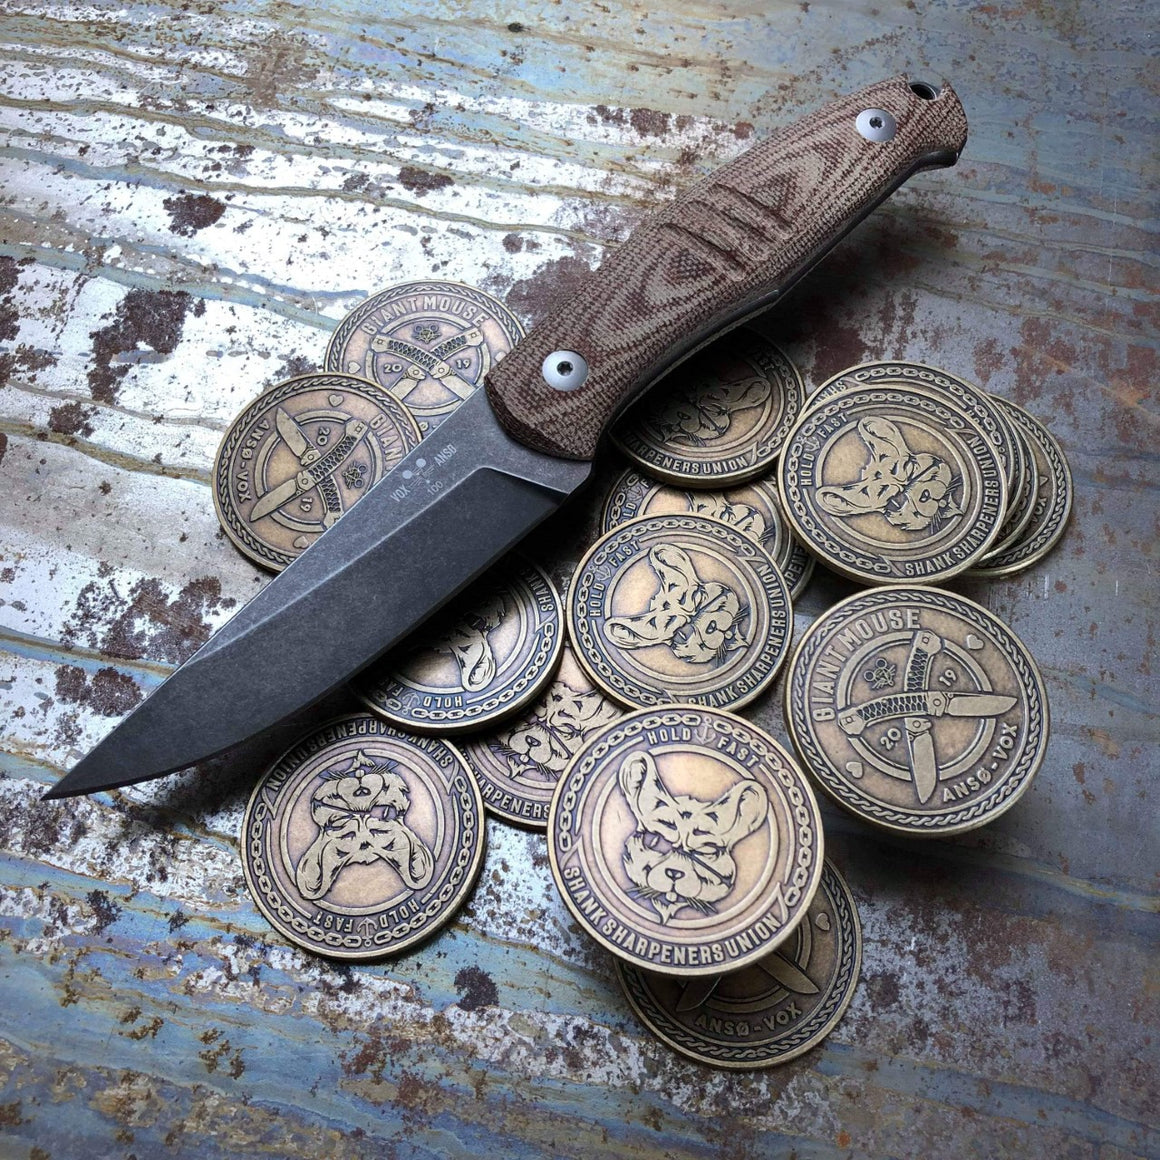 Shank Sharpeners Union 2019 Coin - GiantMouse Knives - Anso Vox Collaborations